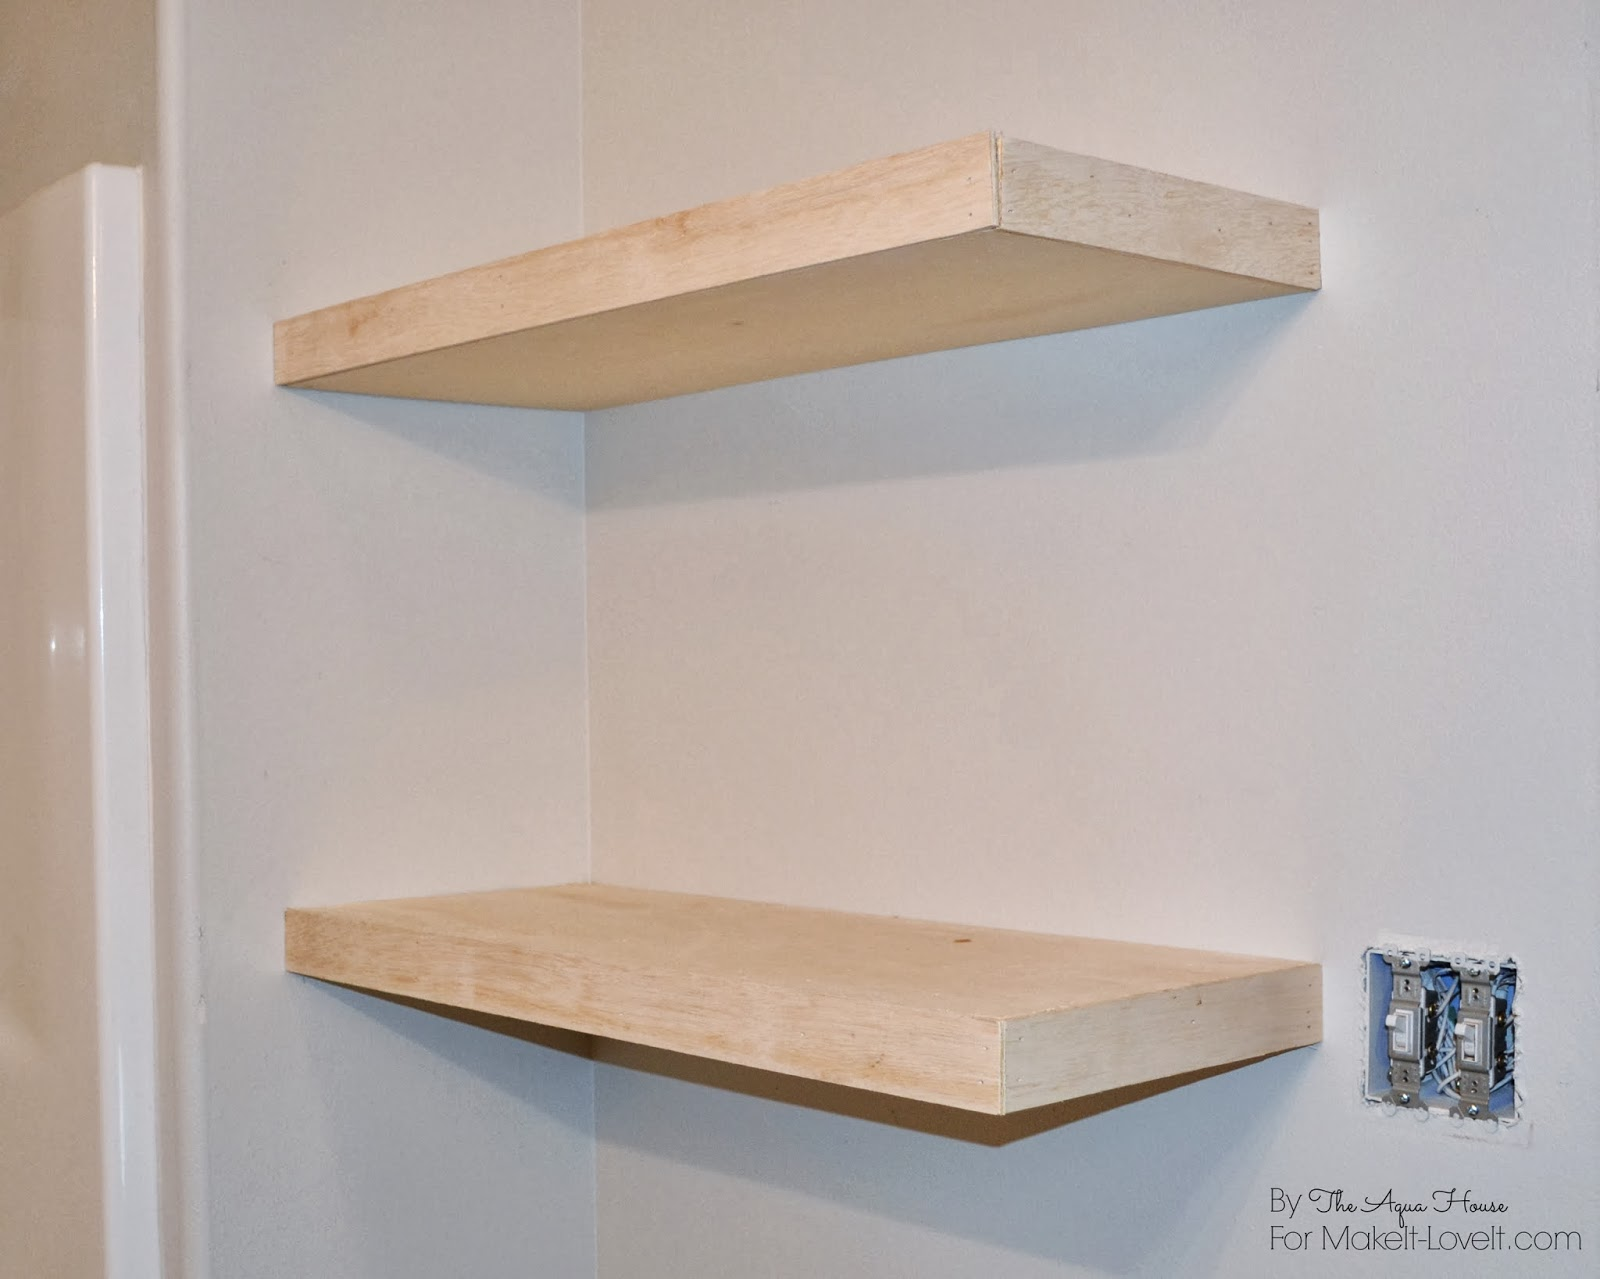 diy floating shelves great storage solution make and love hang shelf without brackets makeit loveit desk bookcase combination book small shoe rack ikea better homes gardens racks